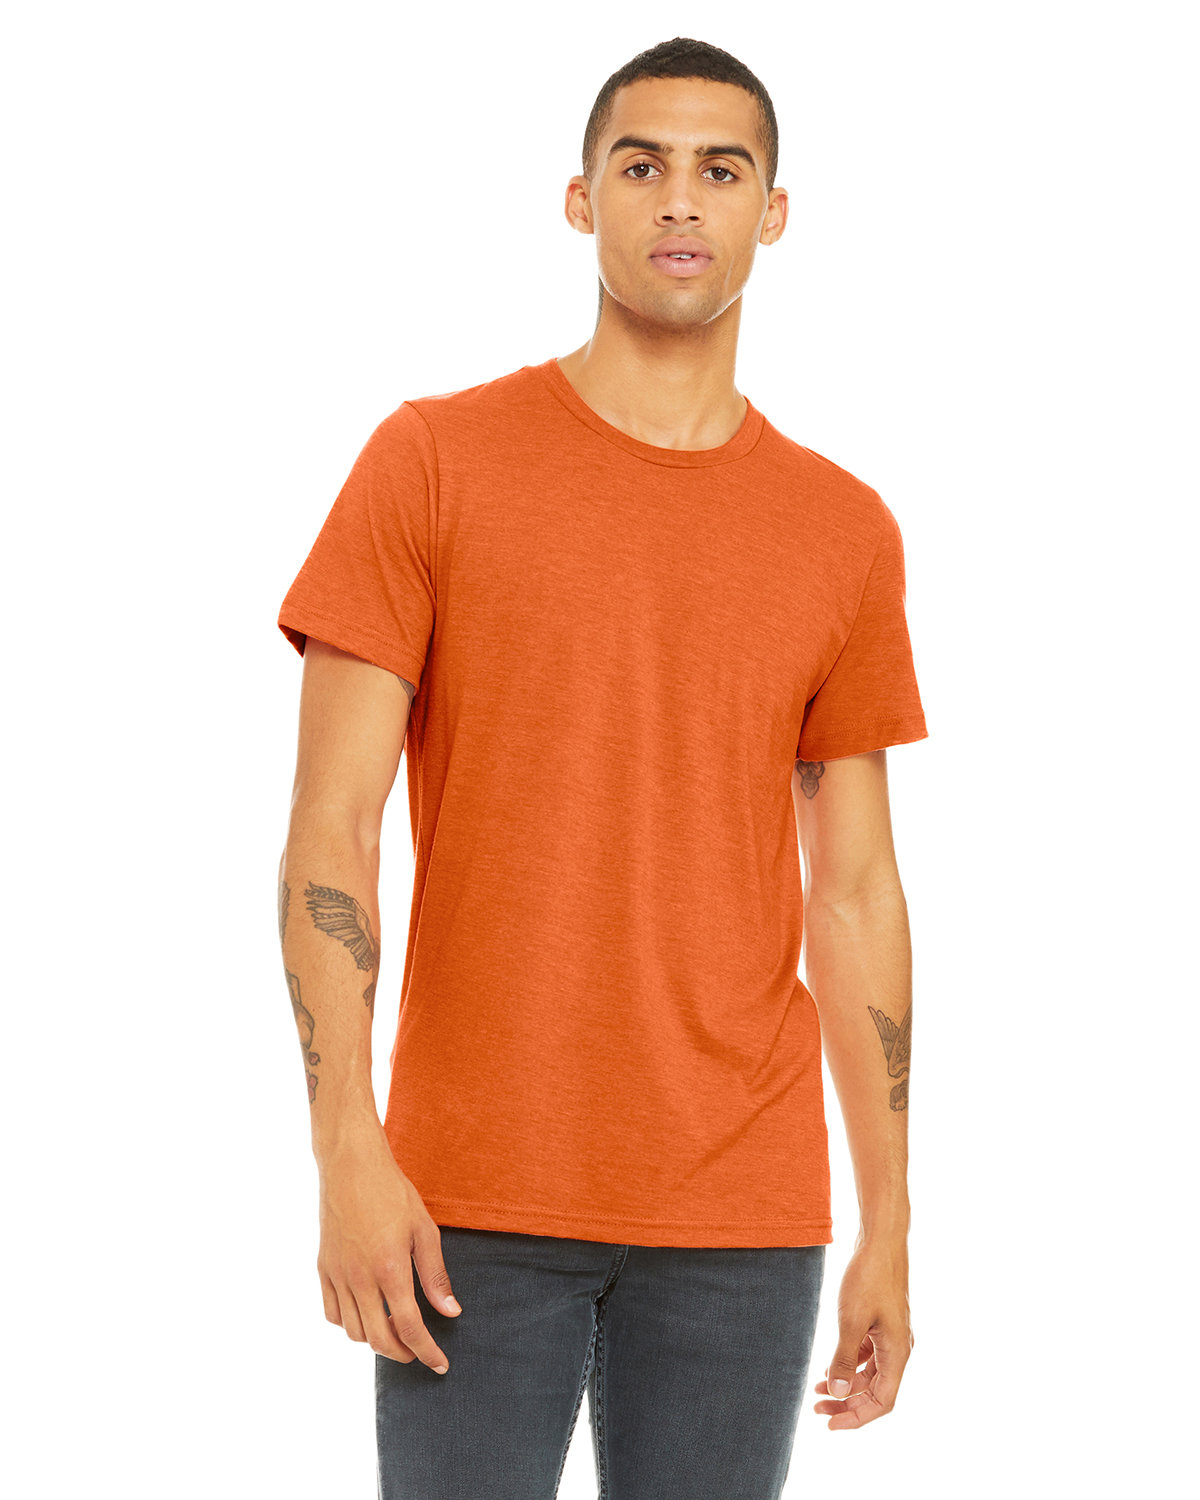 Bella + Canvas Unisex Heather CVC T-Shirt HEATHER ORANGE